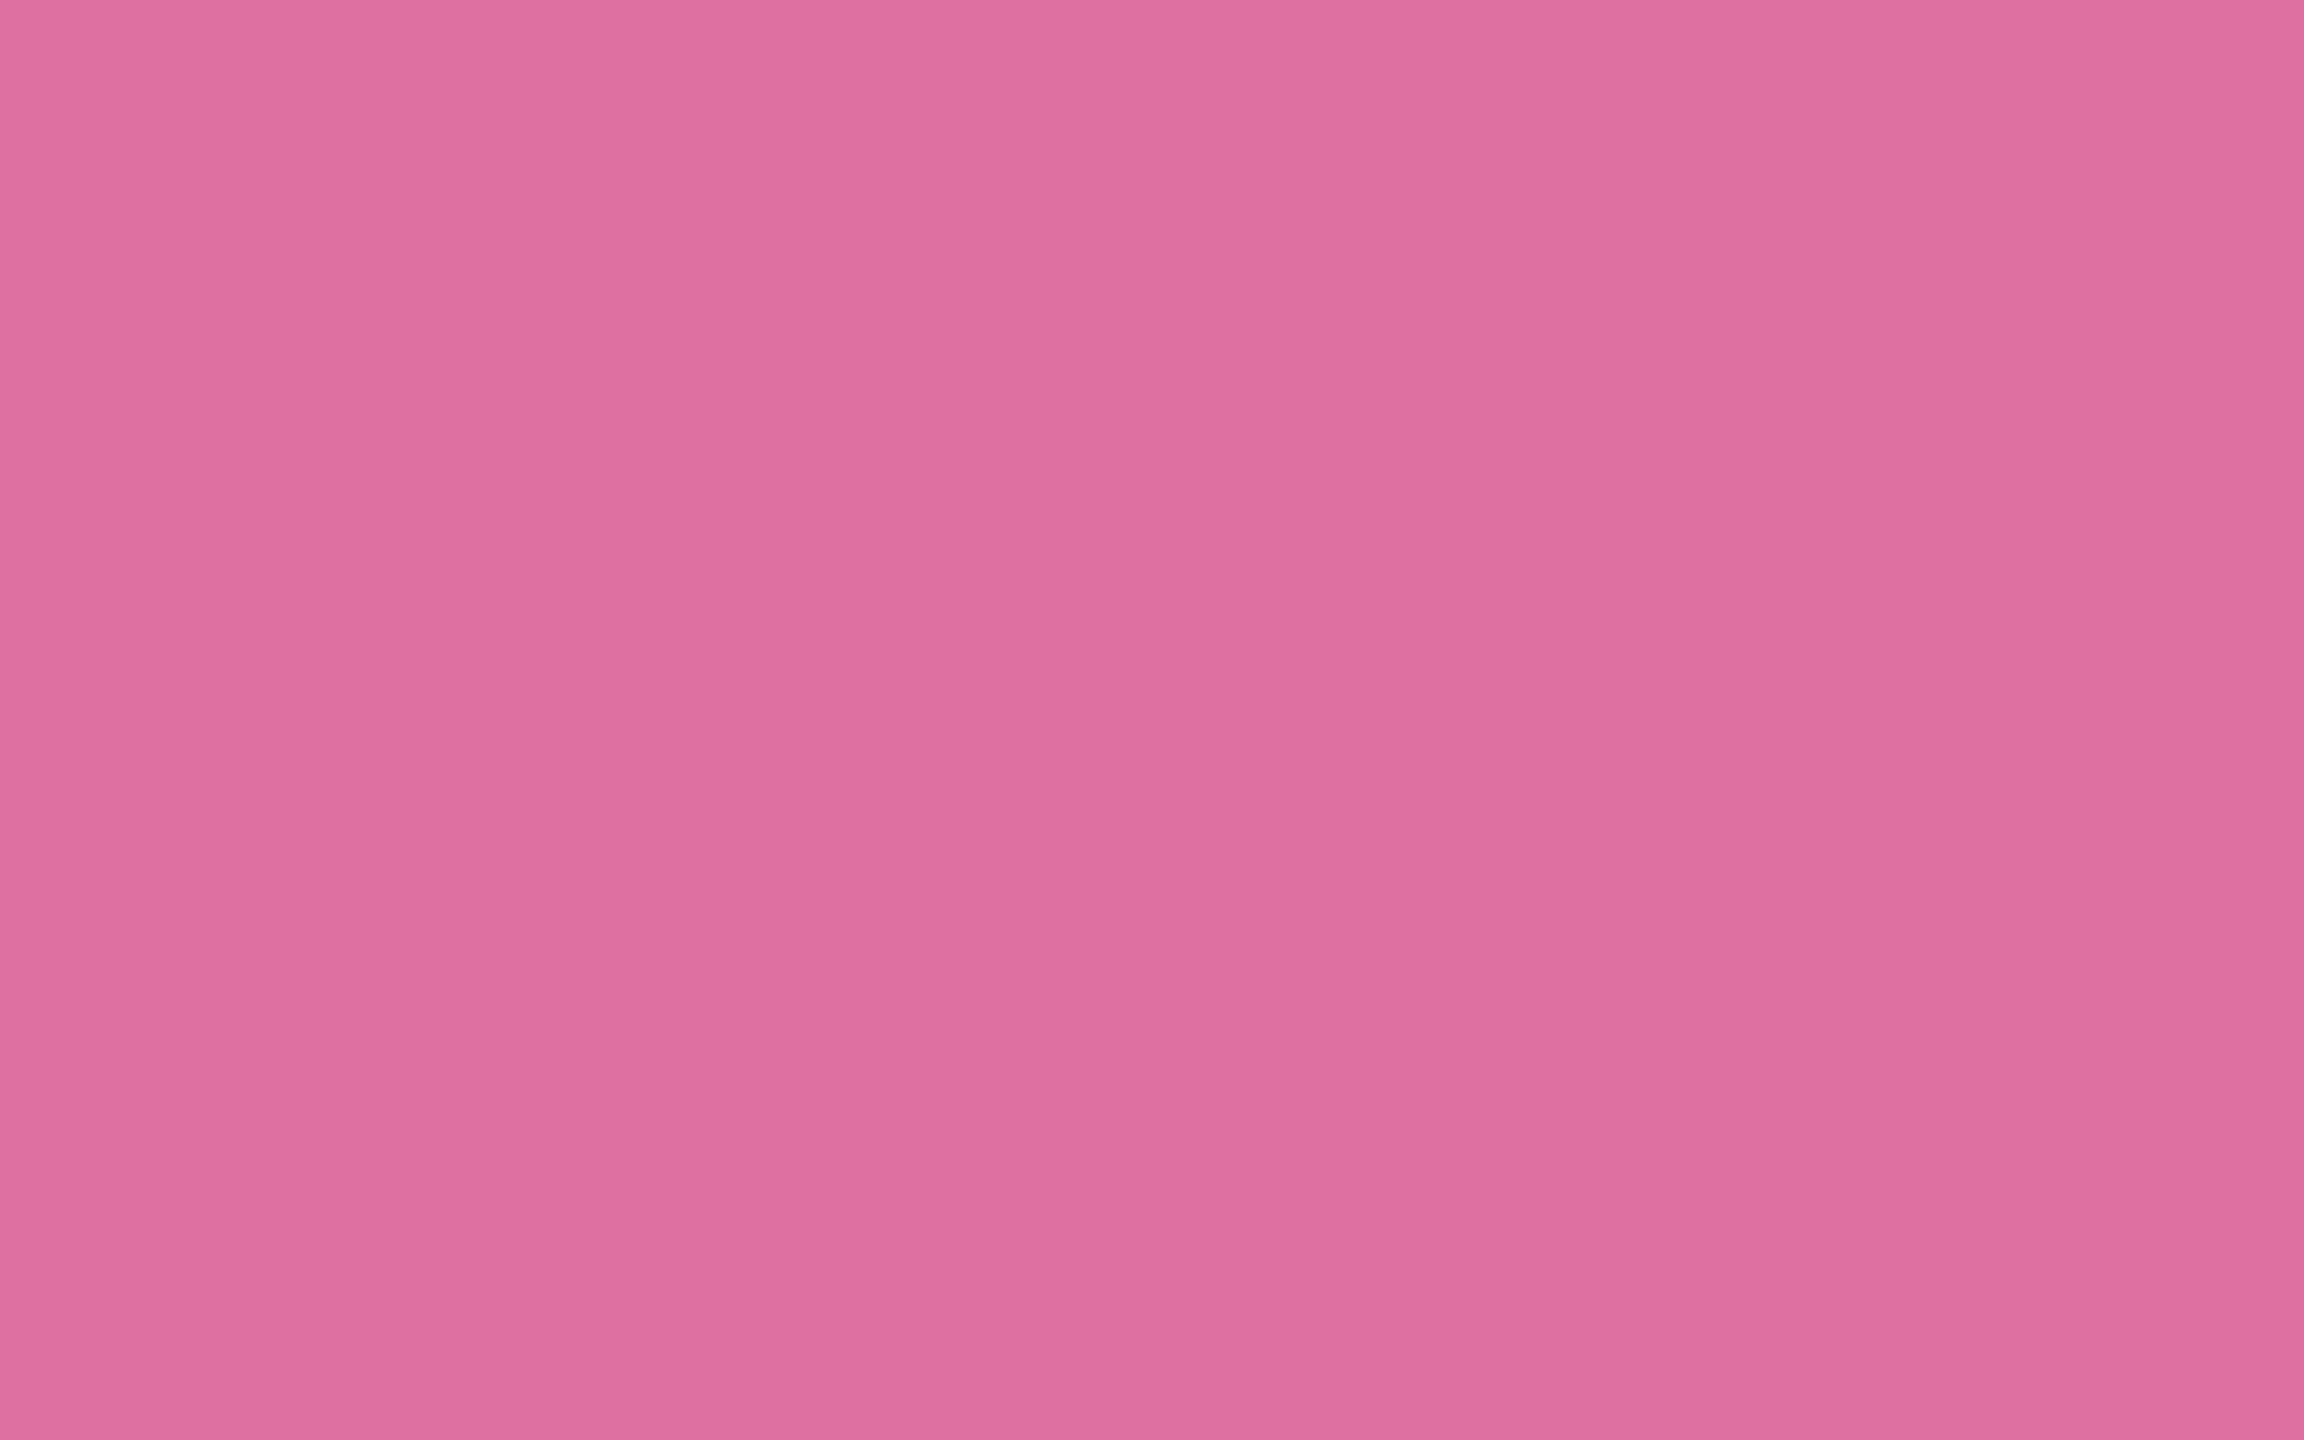 2304x1440 Thulian Pink Solid Color Background